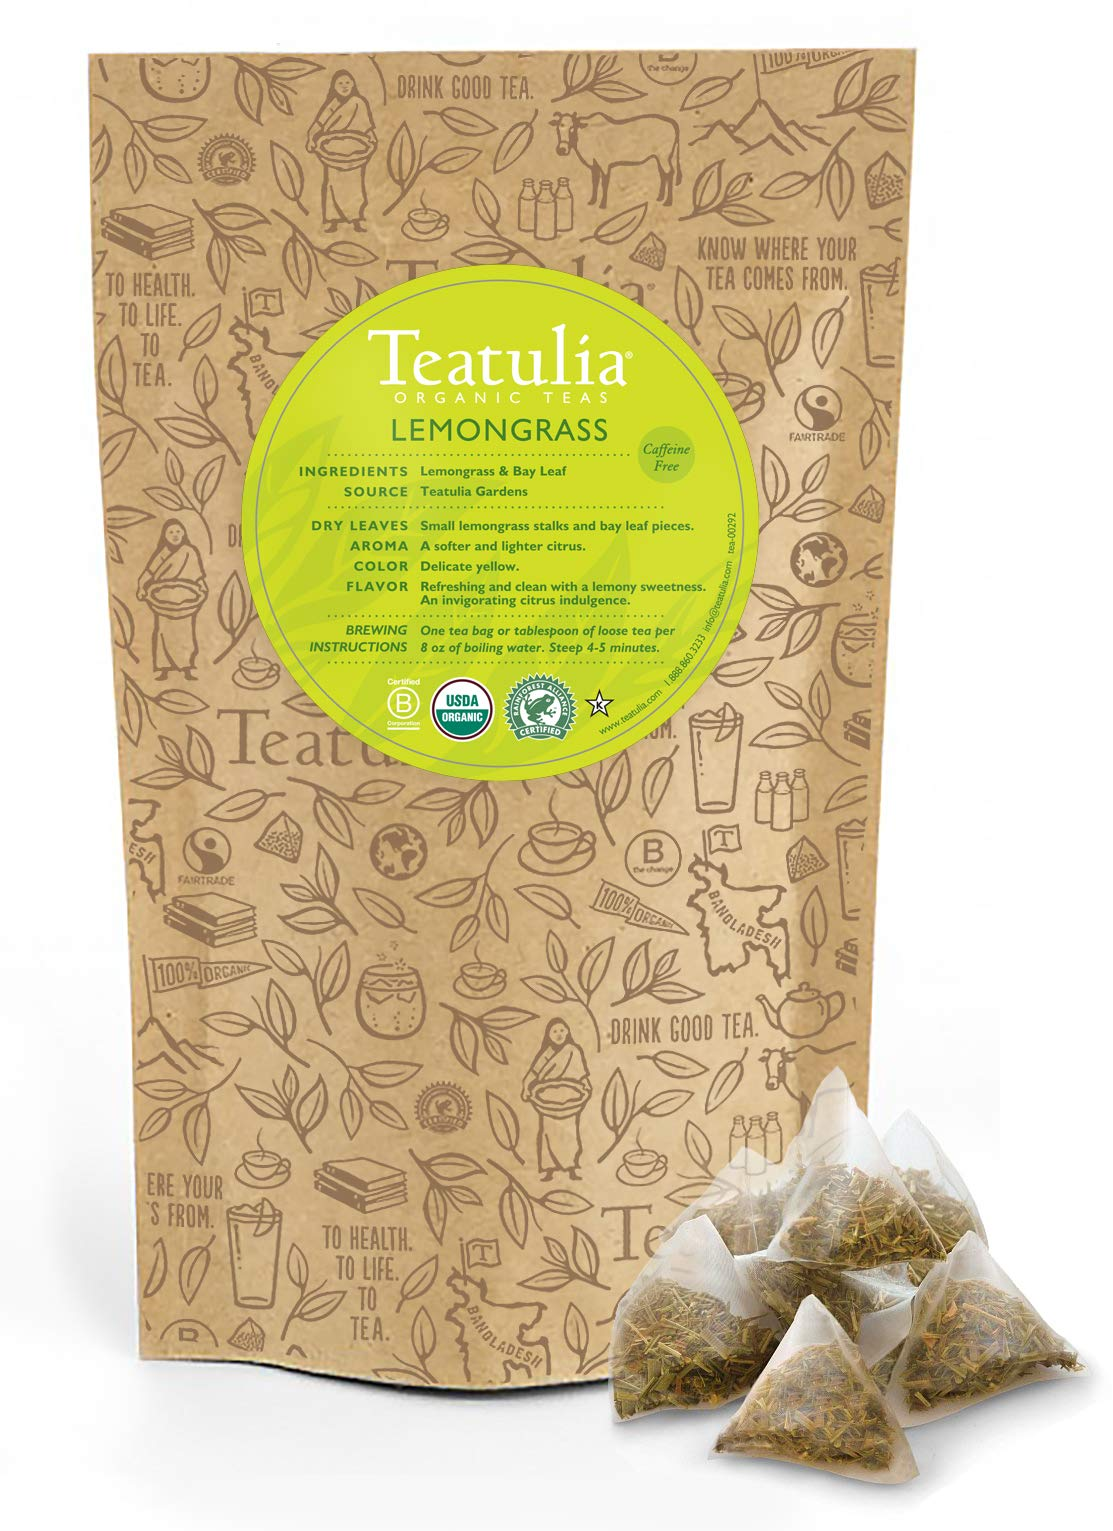 Teatulia Organic Lemongrass Herbal Tea 50ct Premium Pyramid Tea Bags - Caffeine Free - Brew Hot or Cold Compostable Corn-Silk Bags